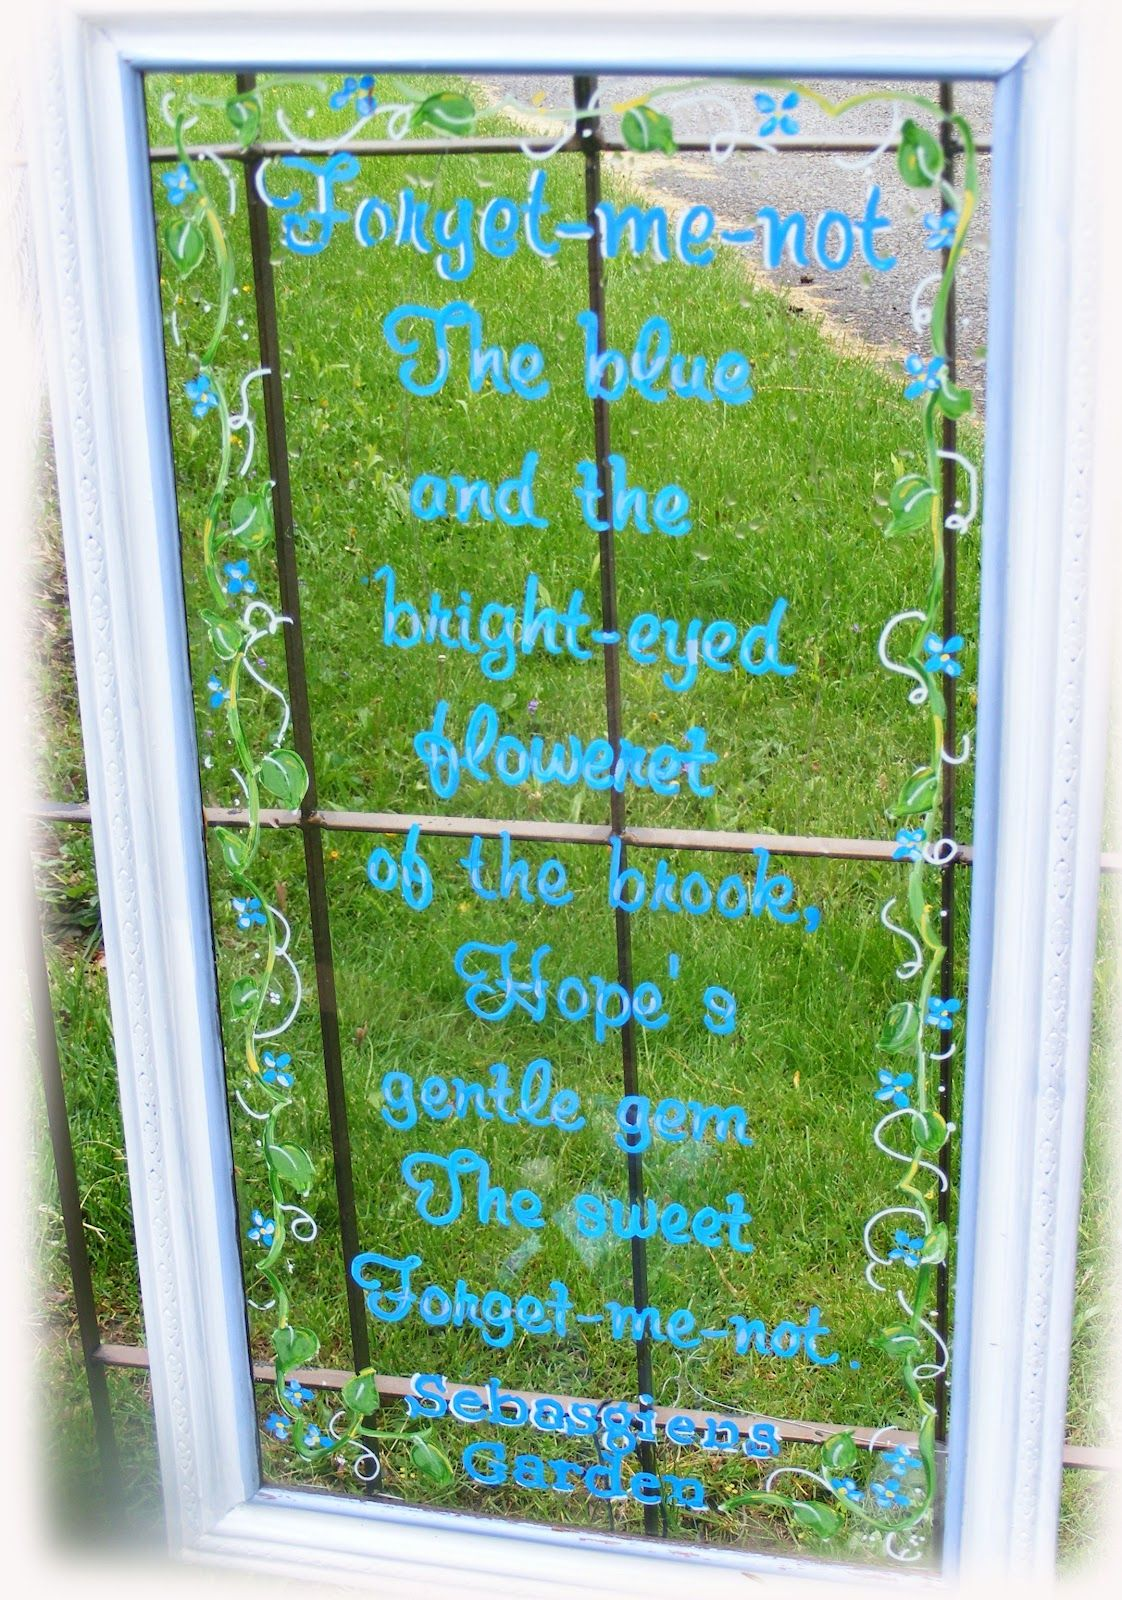 Garden decor craft ideas  Window Art Garden Saying  Reduce reuse recycle  Pinterest